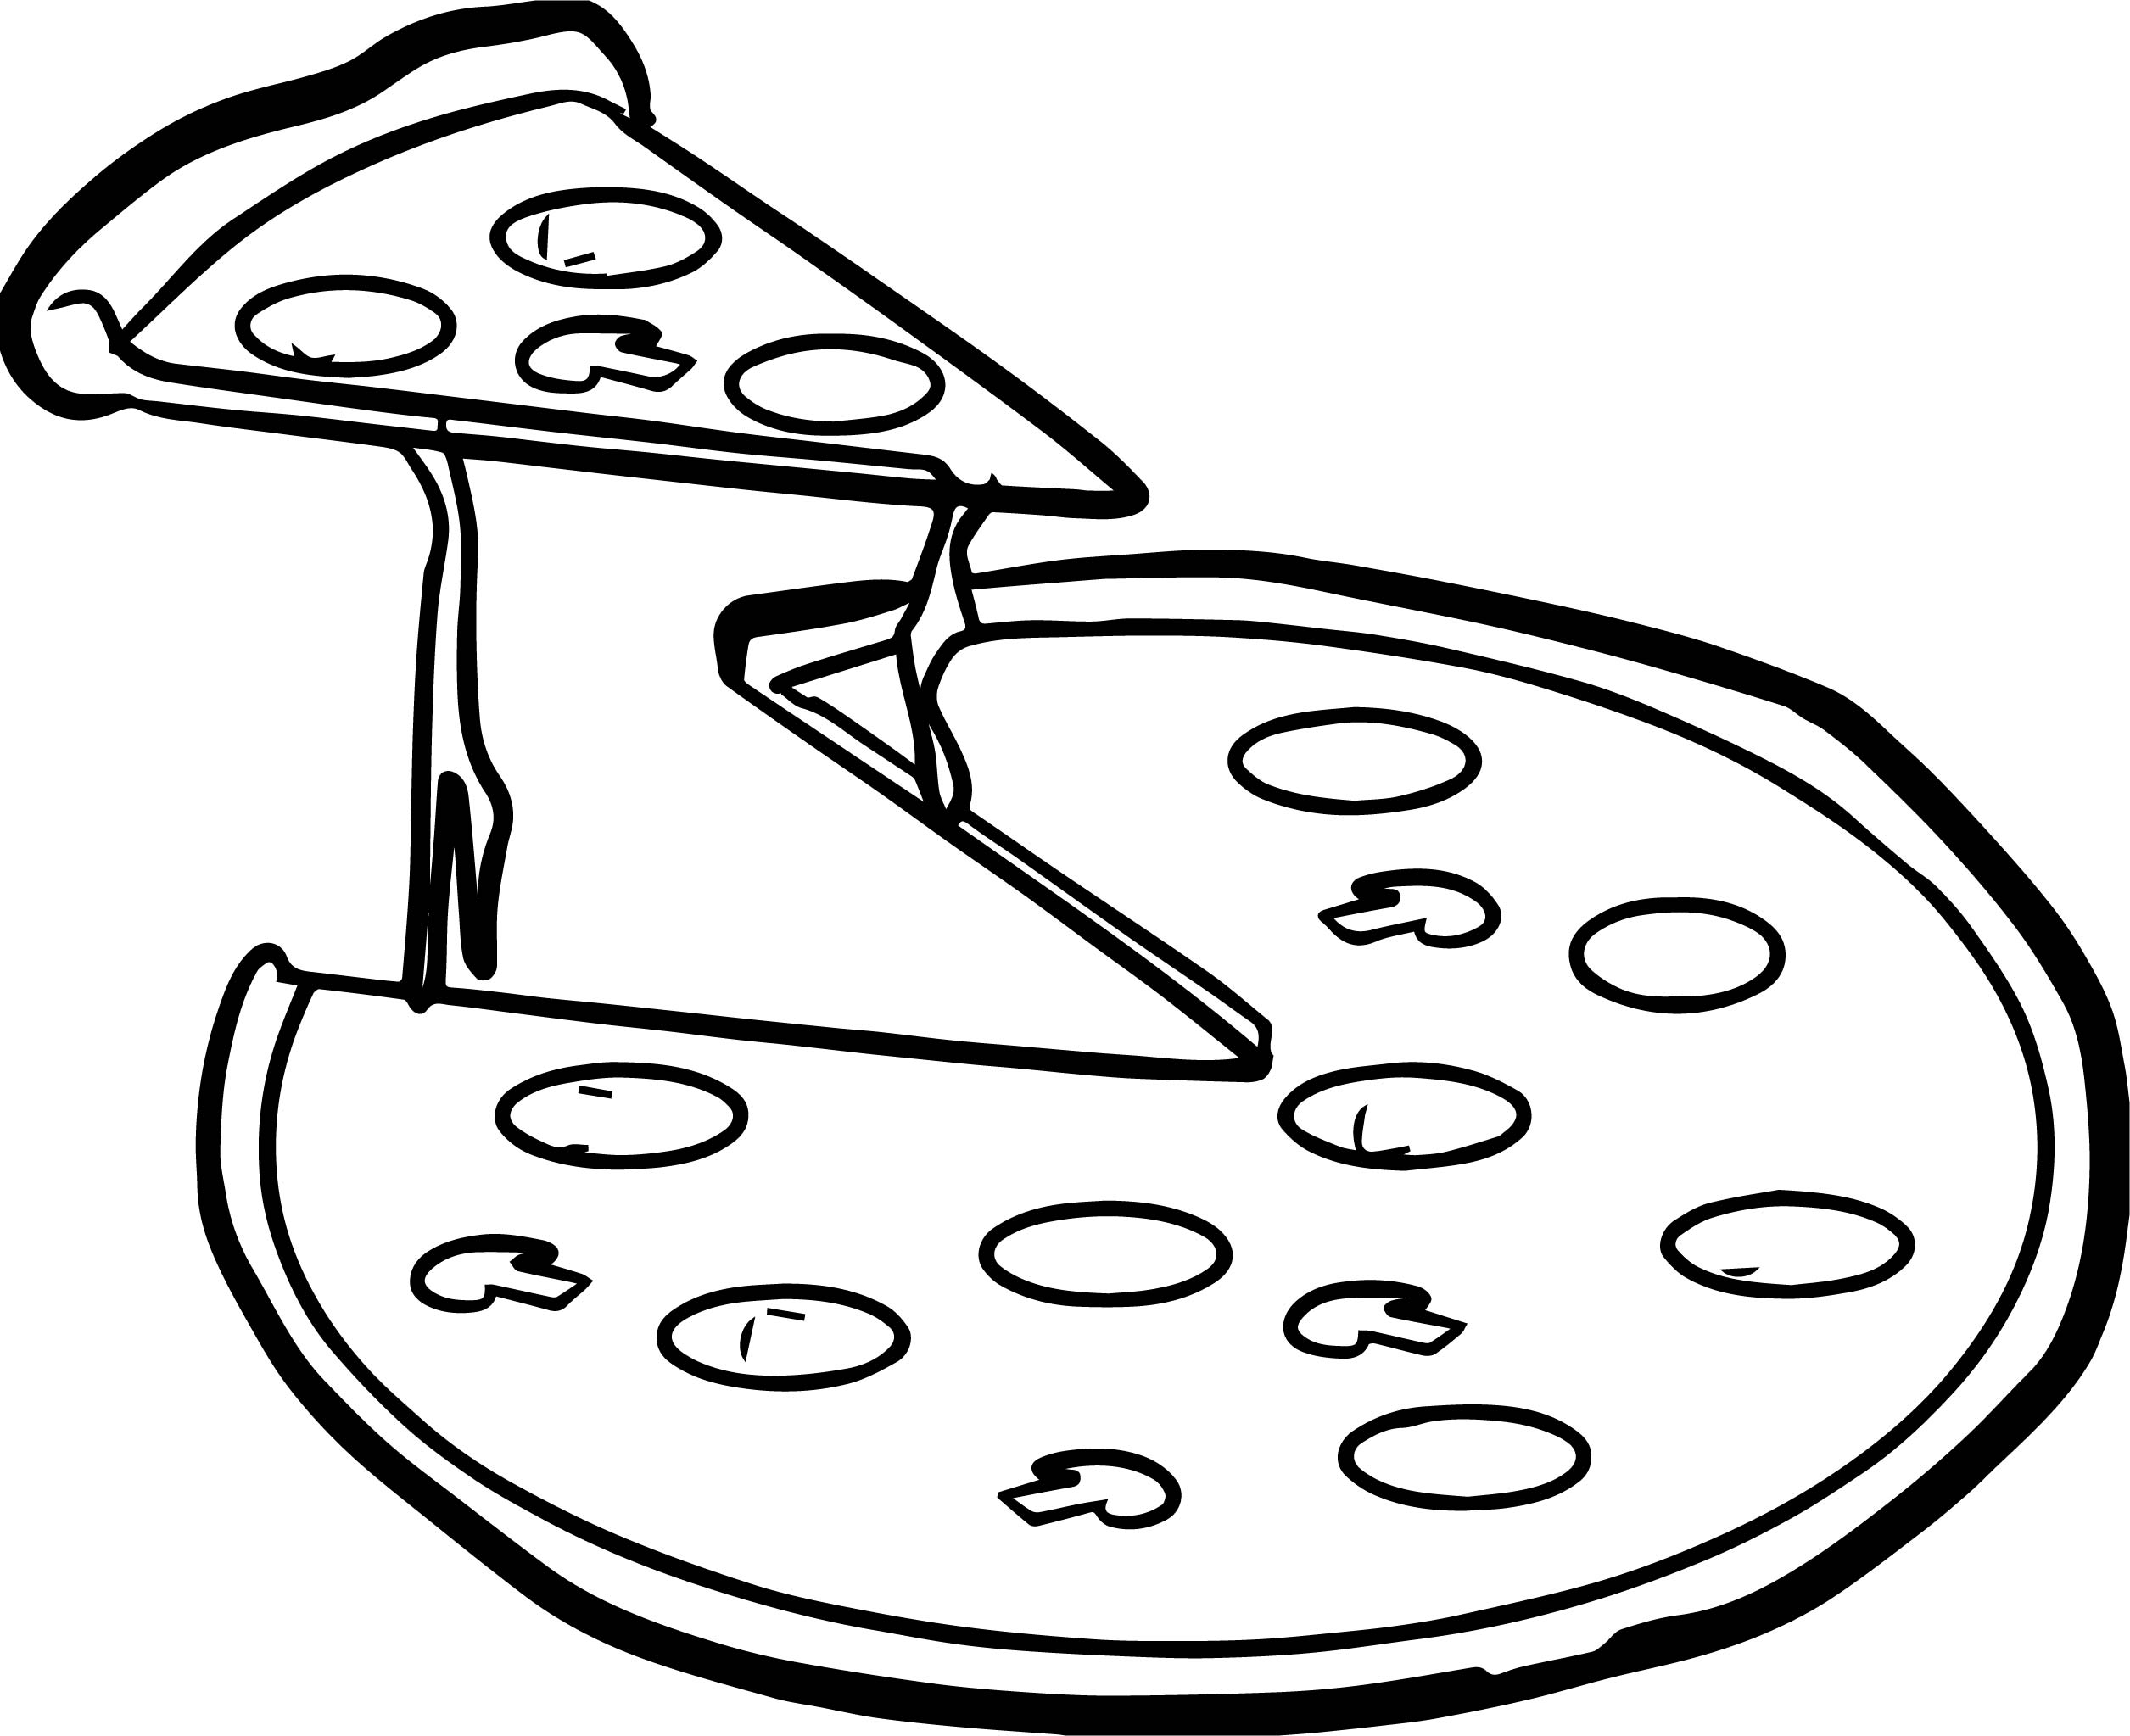 2511x2047 Pizza Hut Coloring Pages